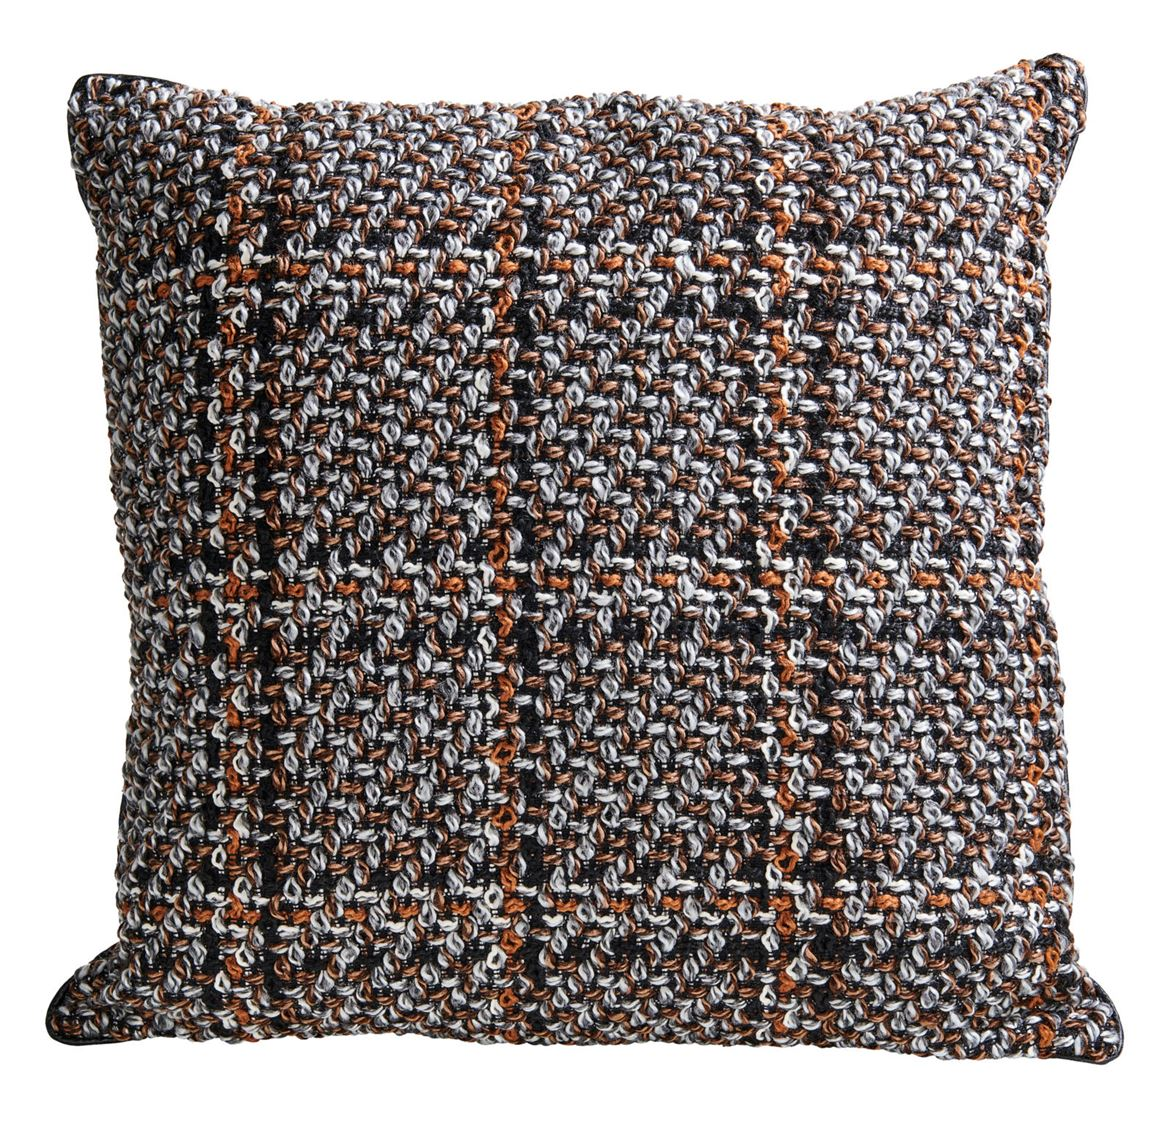 SUZANNE Coussin brun Larg. 60 x Long. 60 cm_suzanne-coussin-brun-larg--60-x-long--60-cm